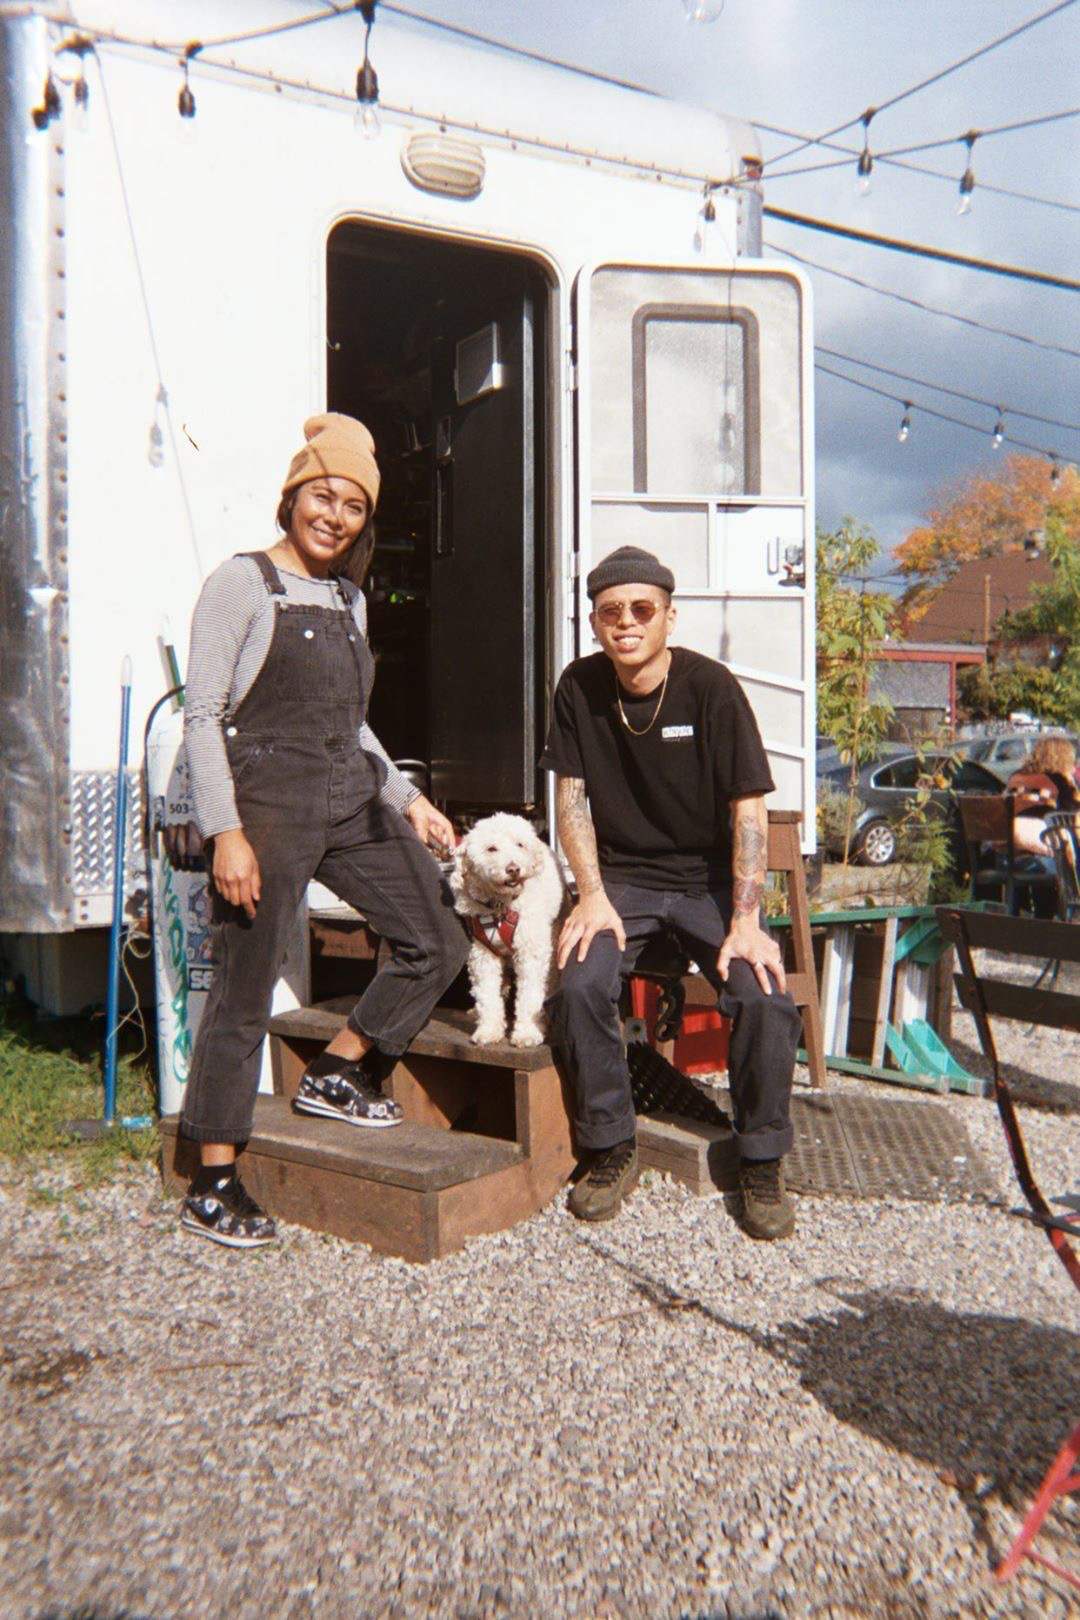 A woman in a beanie and overalls stands outside a food cart, holding a white dog on a leash. A man sits on a stool outside the cart, wearing sunglasses and a beanie.